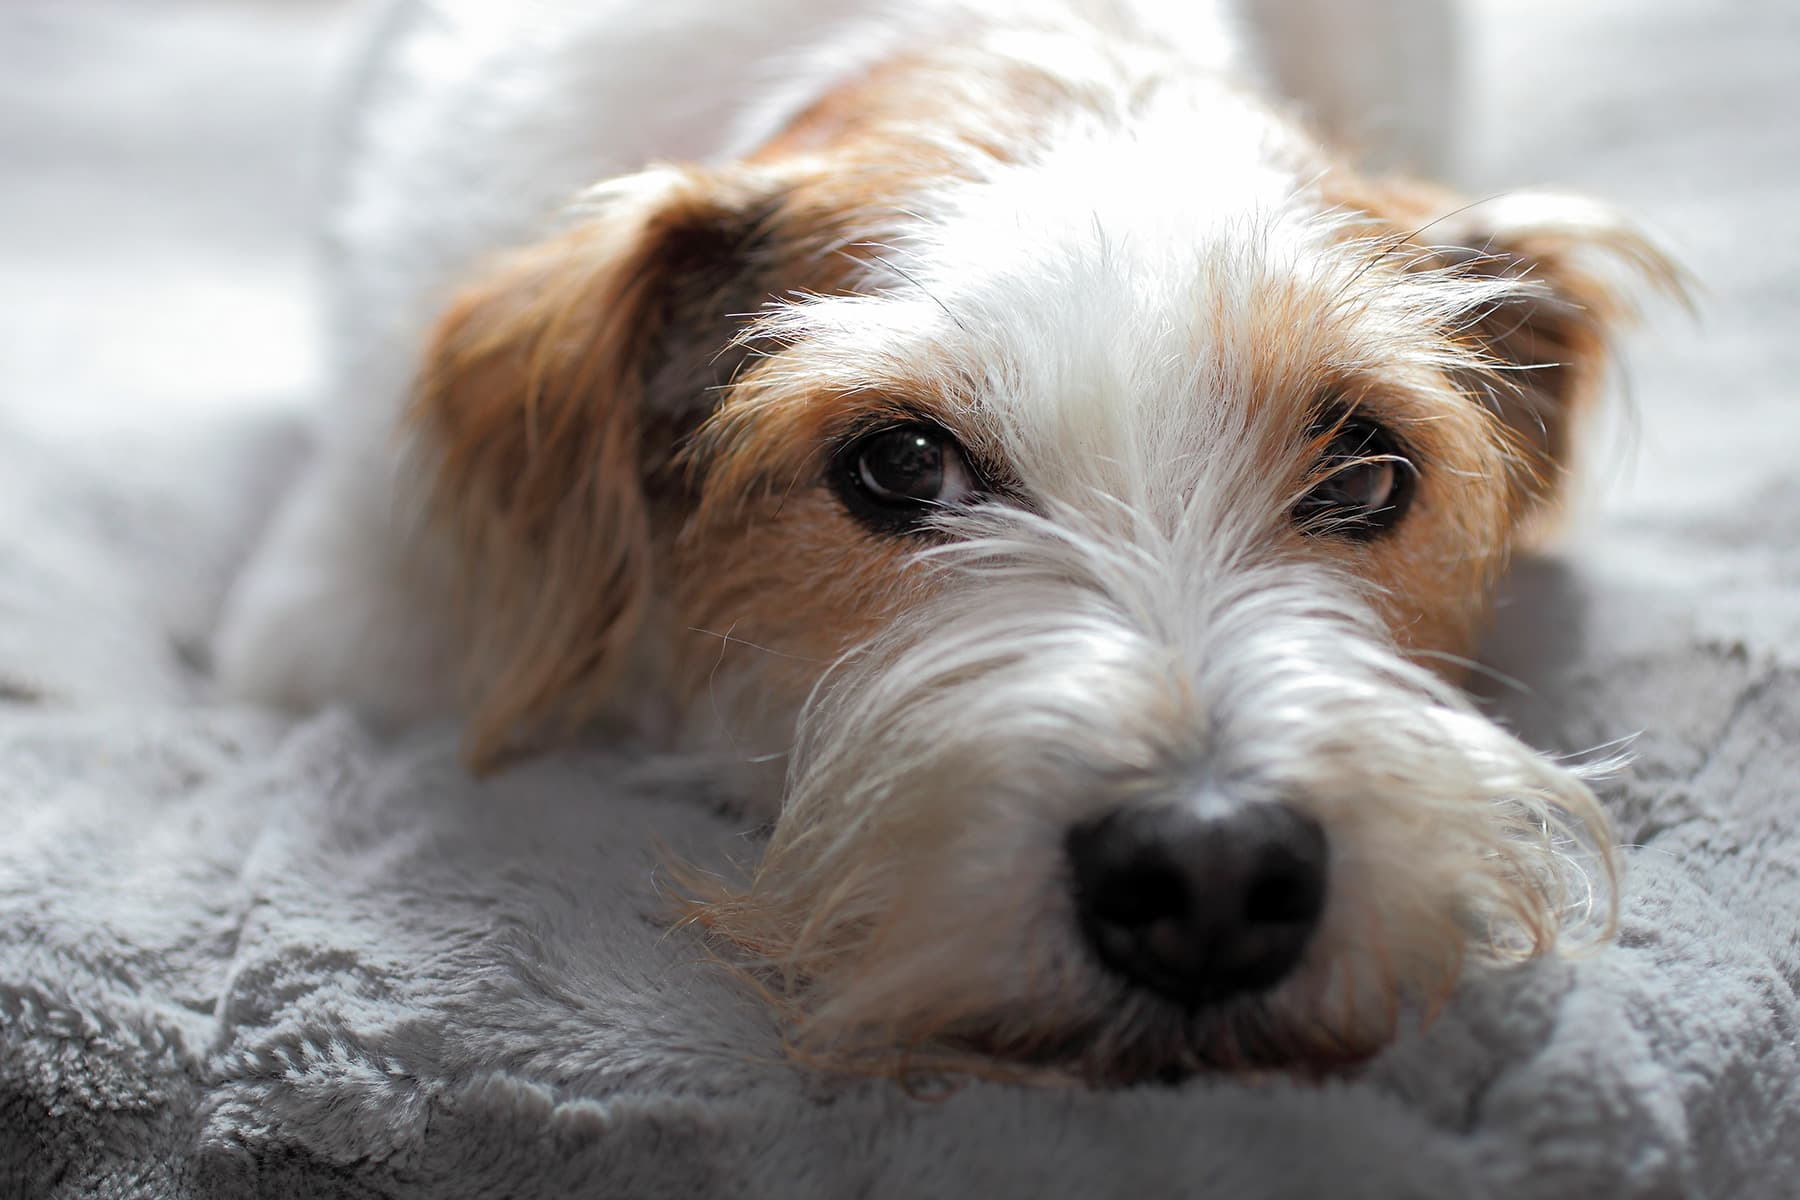 photo of terrier dog close up